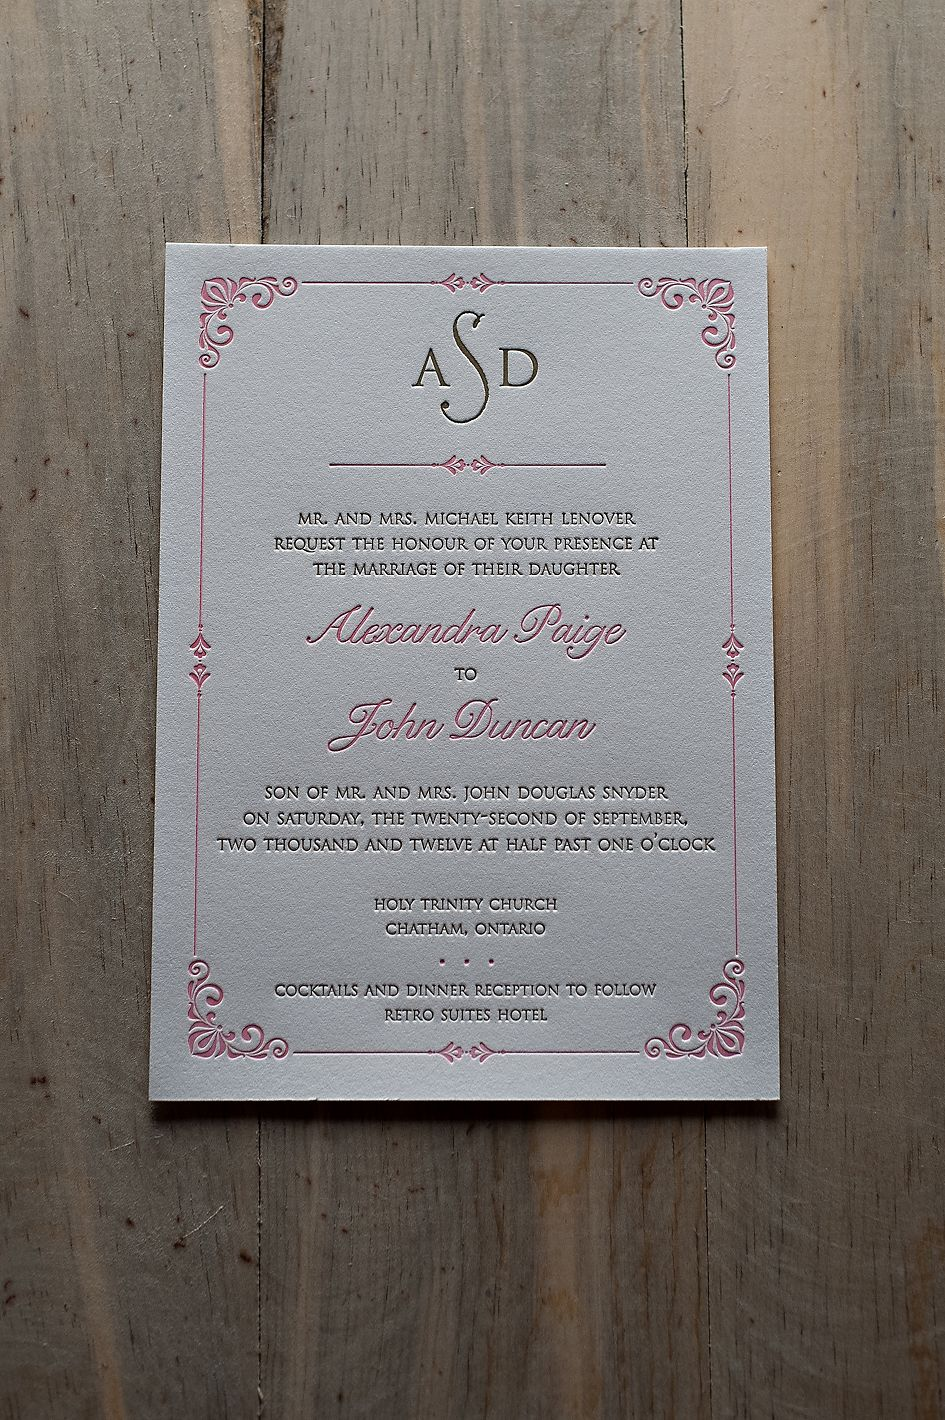 second wedding invitations wording%0A Royal Wedding Invitation  formal invitation wording  pink and gold wedding   letterpress wedding invitations